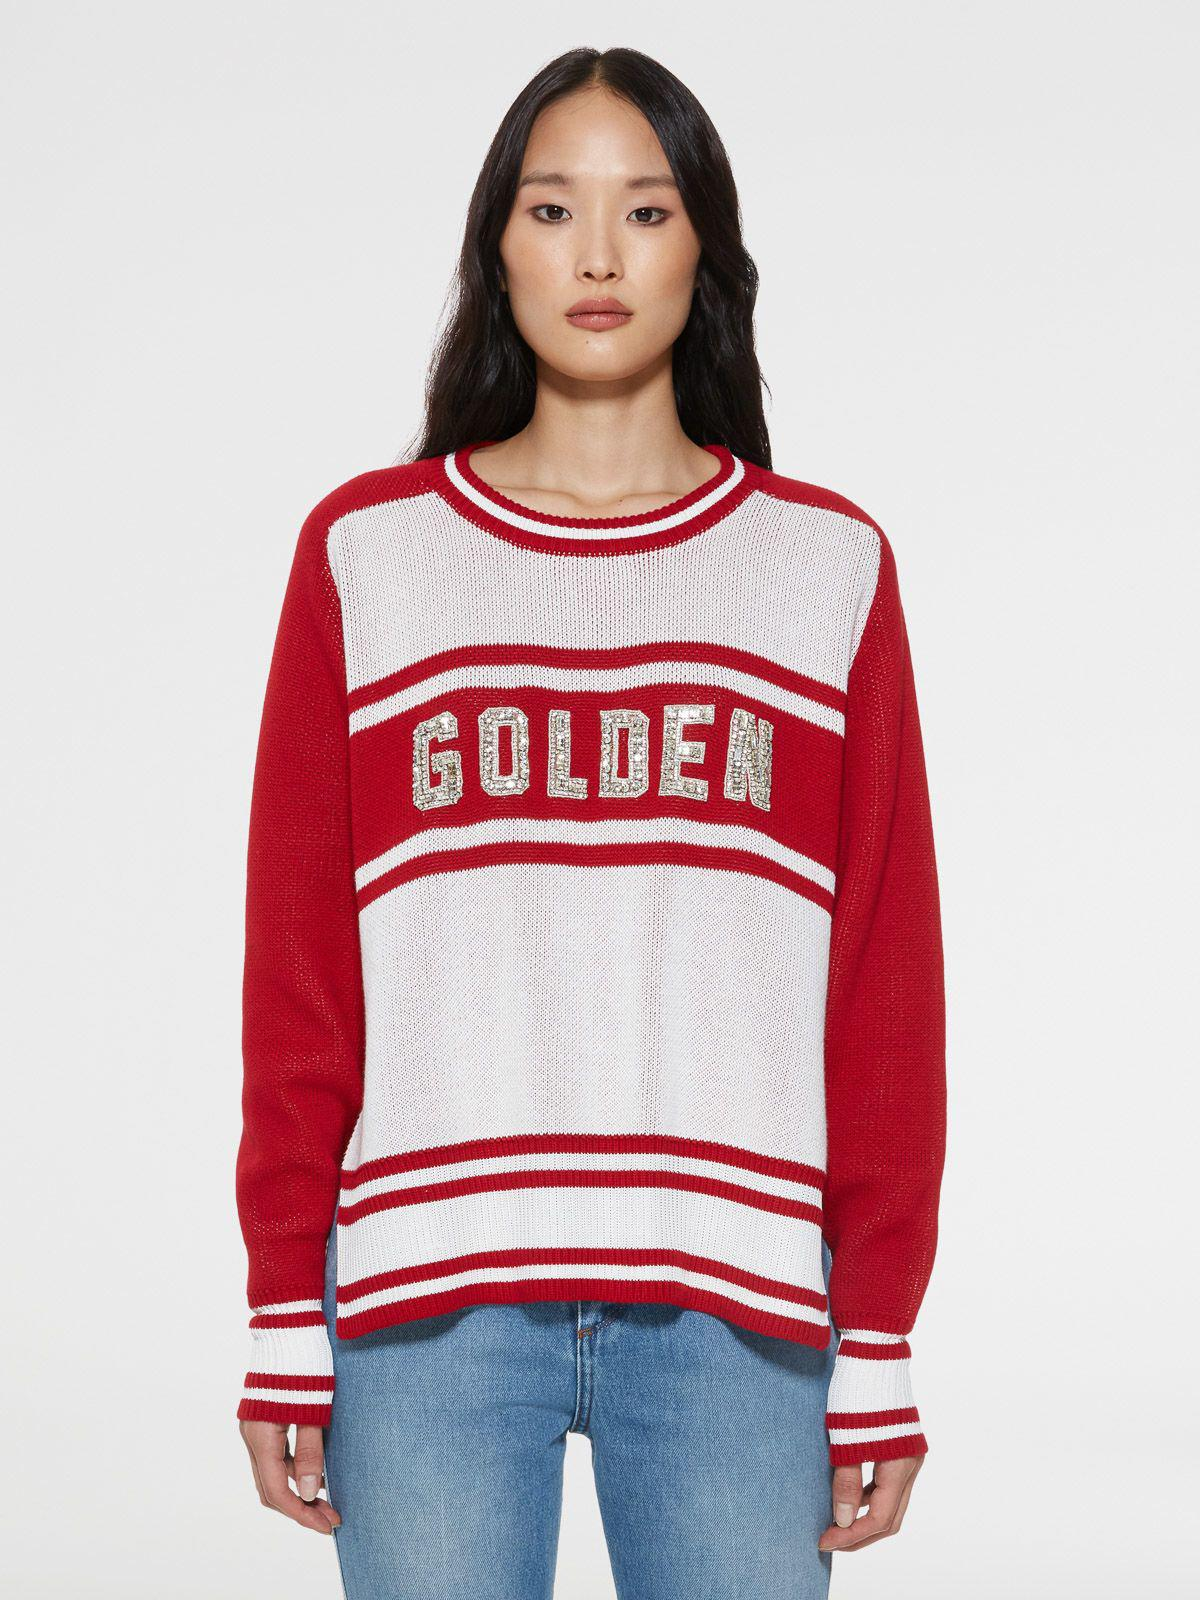 Dianne sweater with Golden lettering with crystals